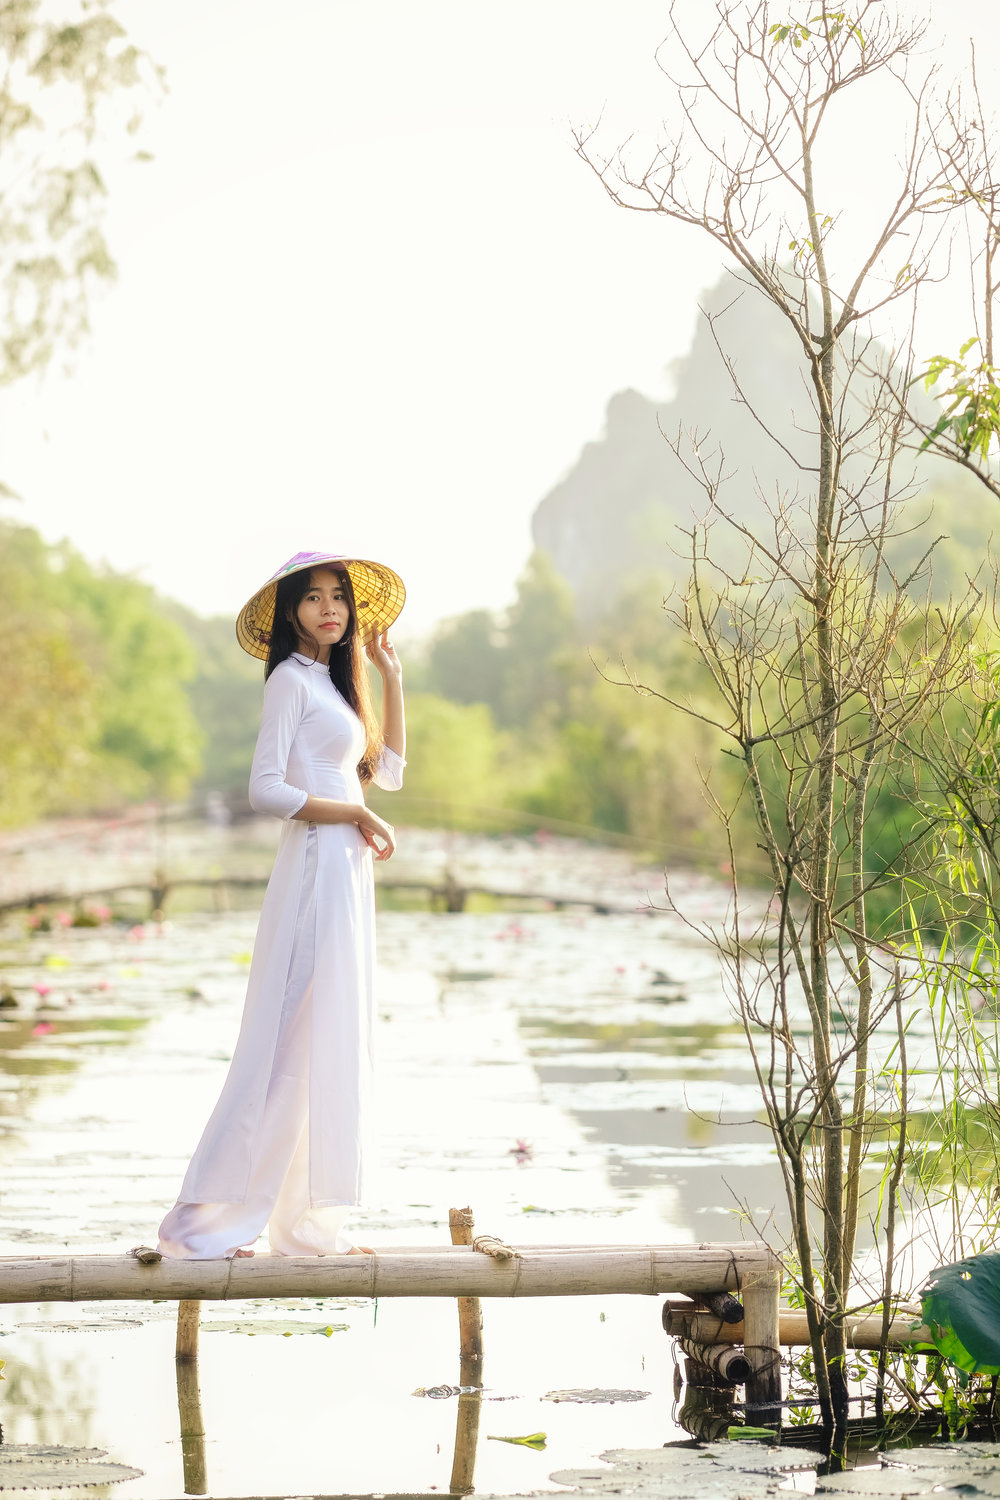 Vienamese girl in white ao dai dress standing on a wooden bridge